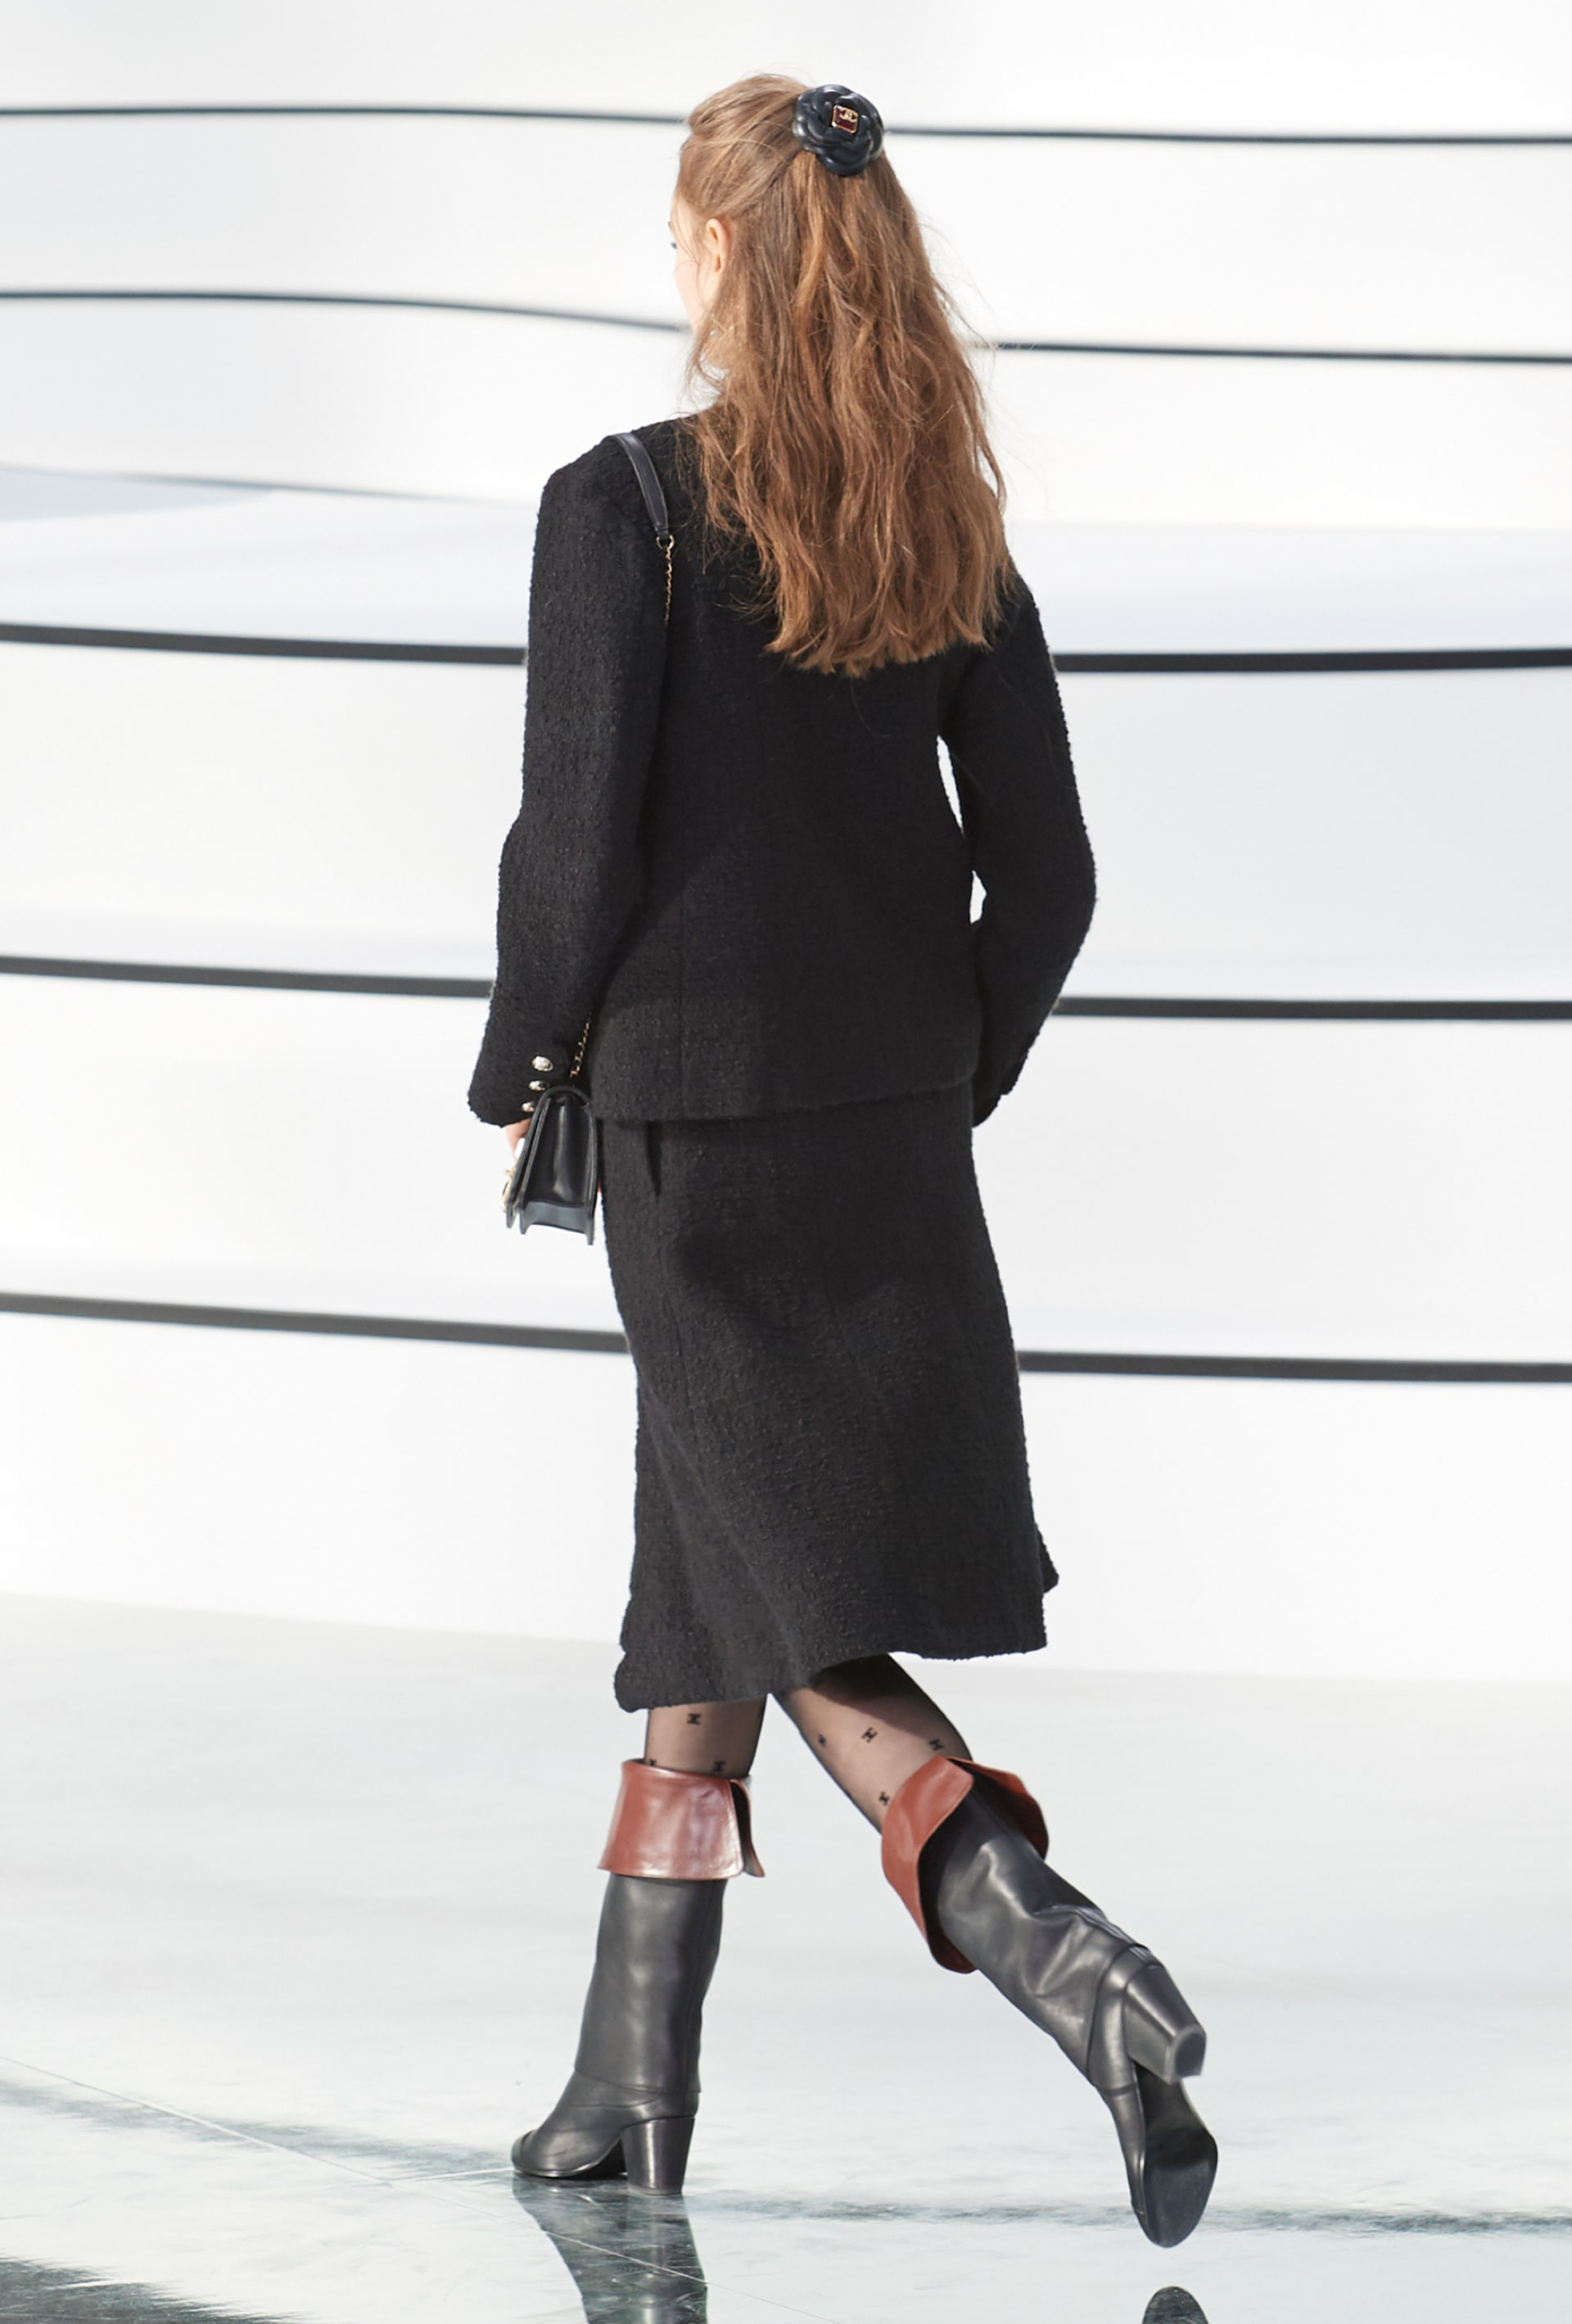 Additional image 3 - Look  11 -  - Fall-Winter 2020/21